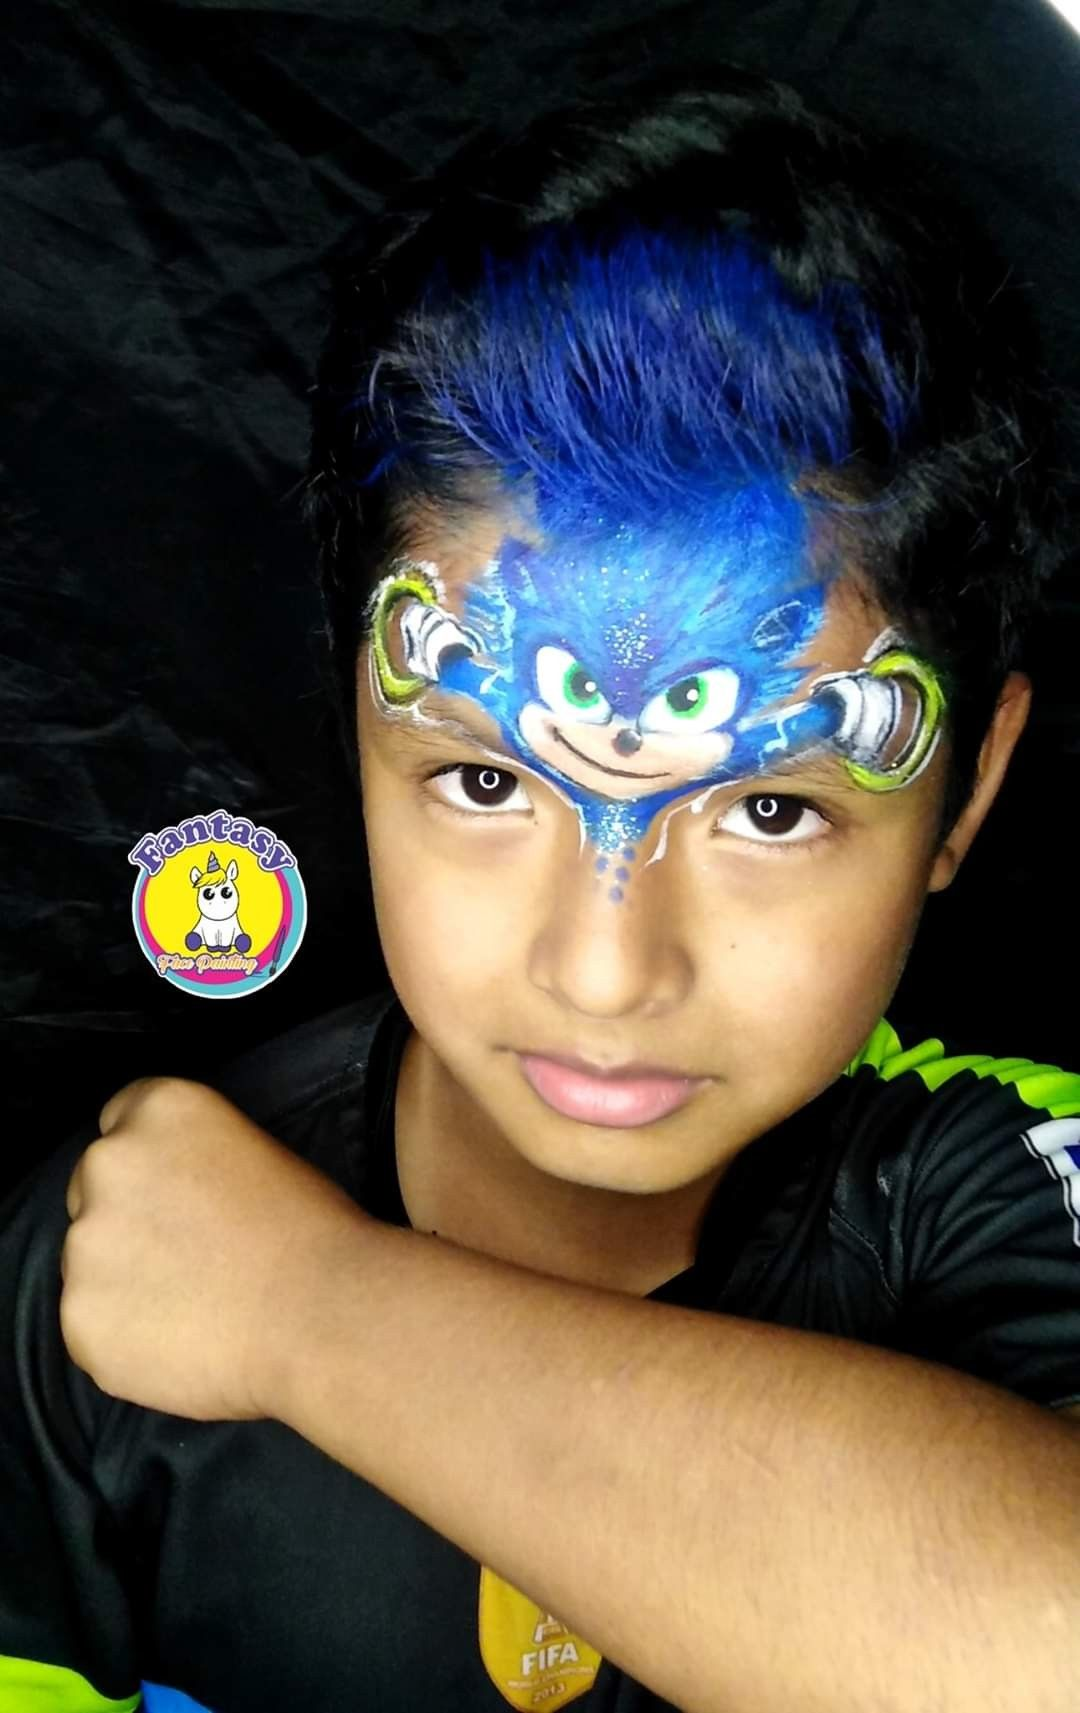 260 Face Paint Character Ideas In 2021 Face Painting Face Painting Designs Face